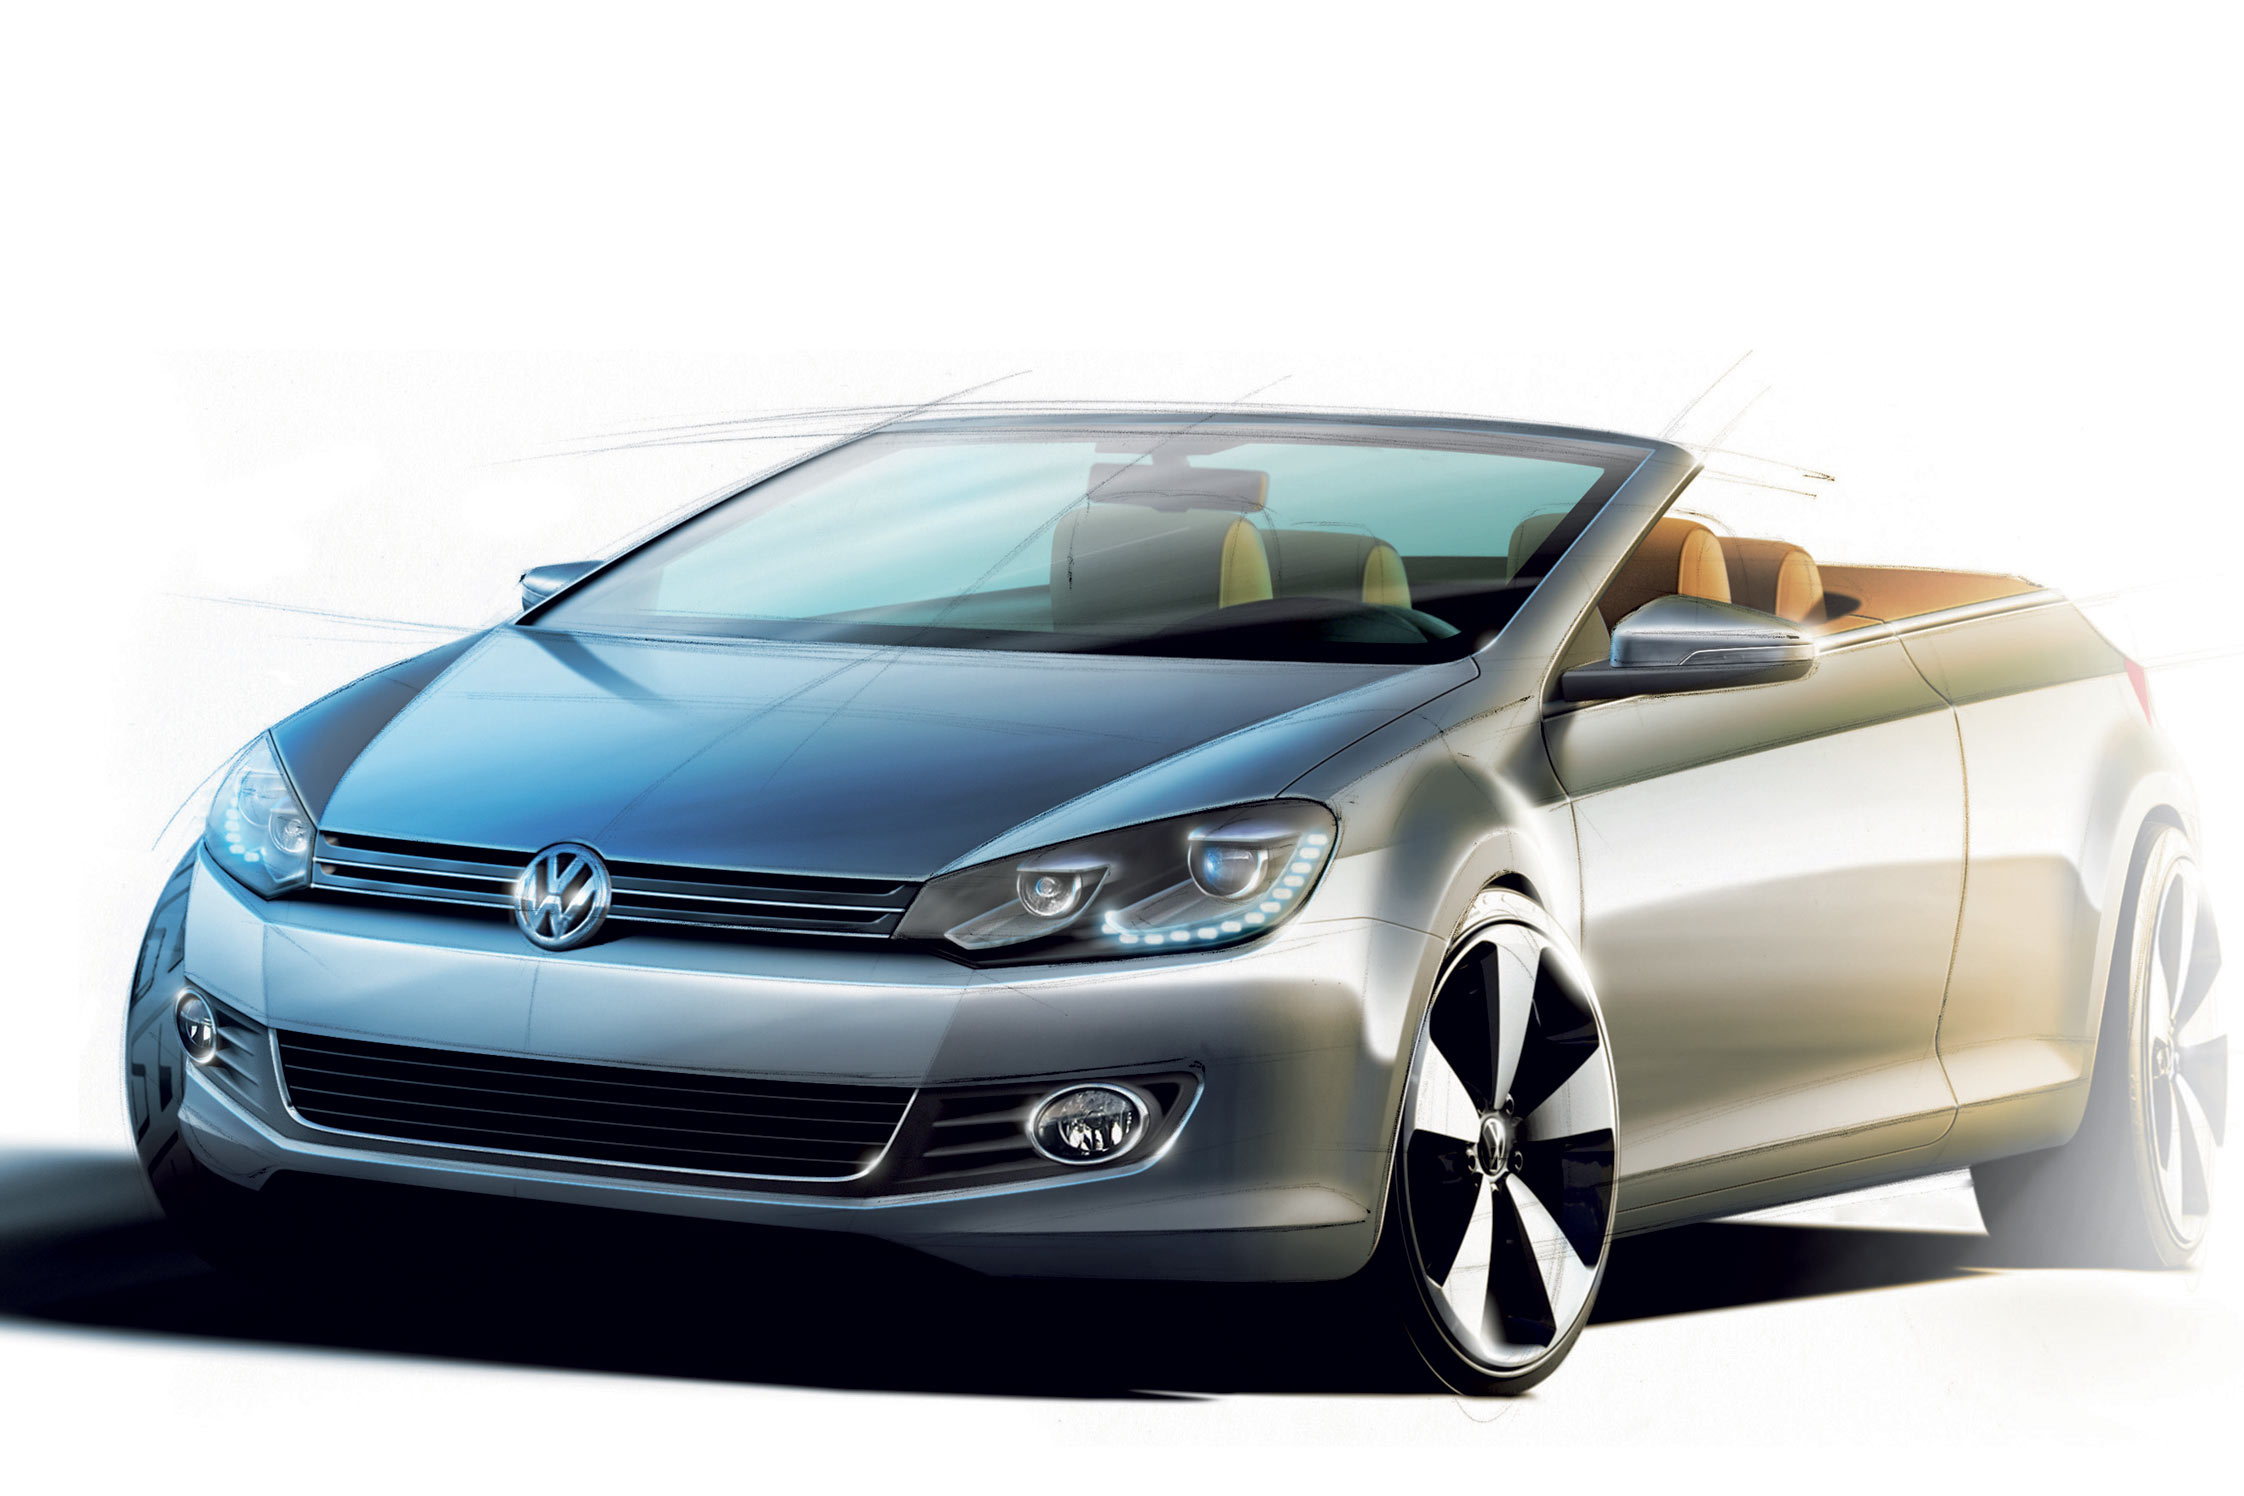 photo volkswagen golf vi 1 6 tdi 105 ch cabriolet 2011. Black Bedroom Furniture Sets. Home Design Ideas